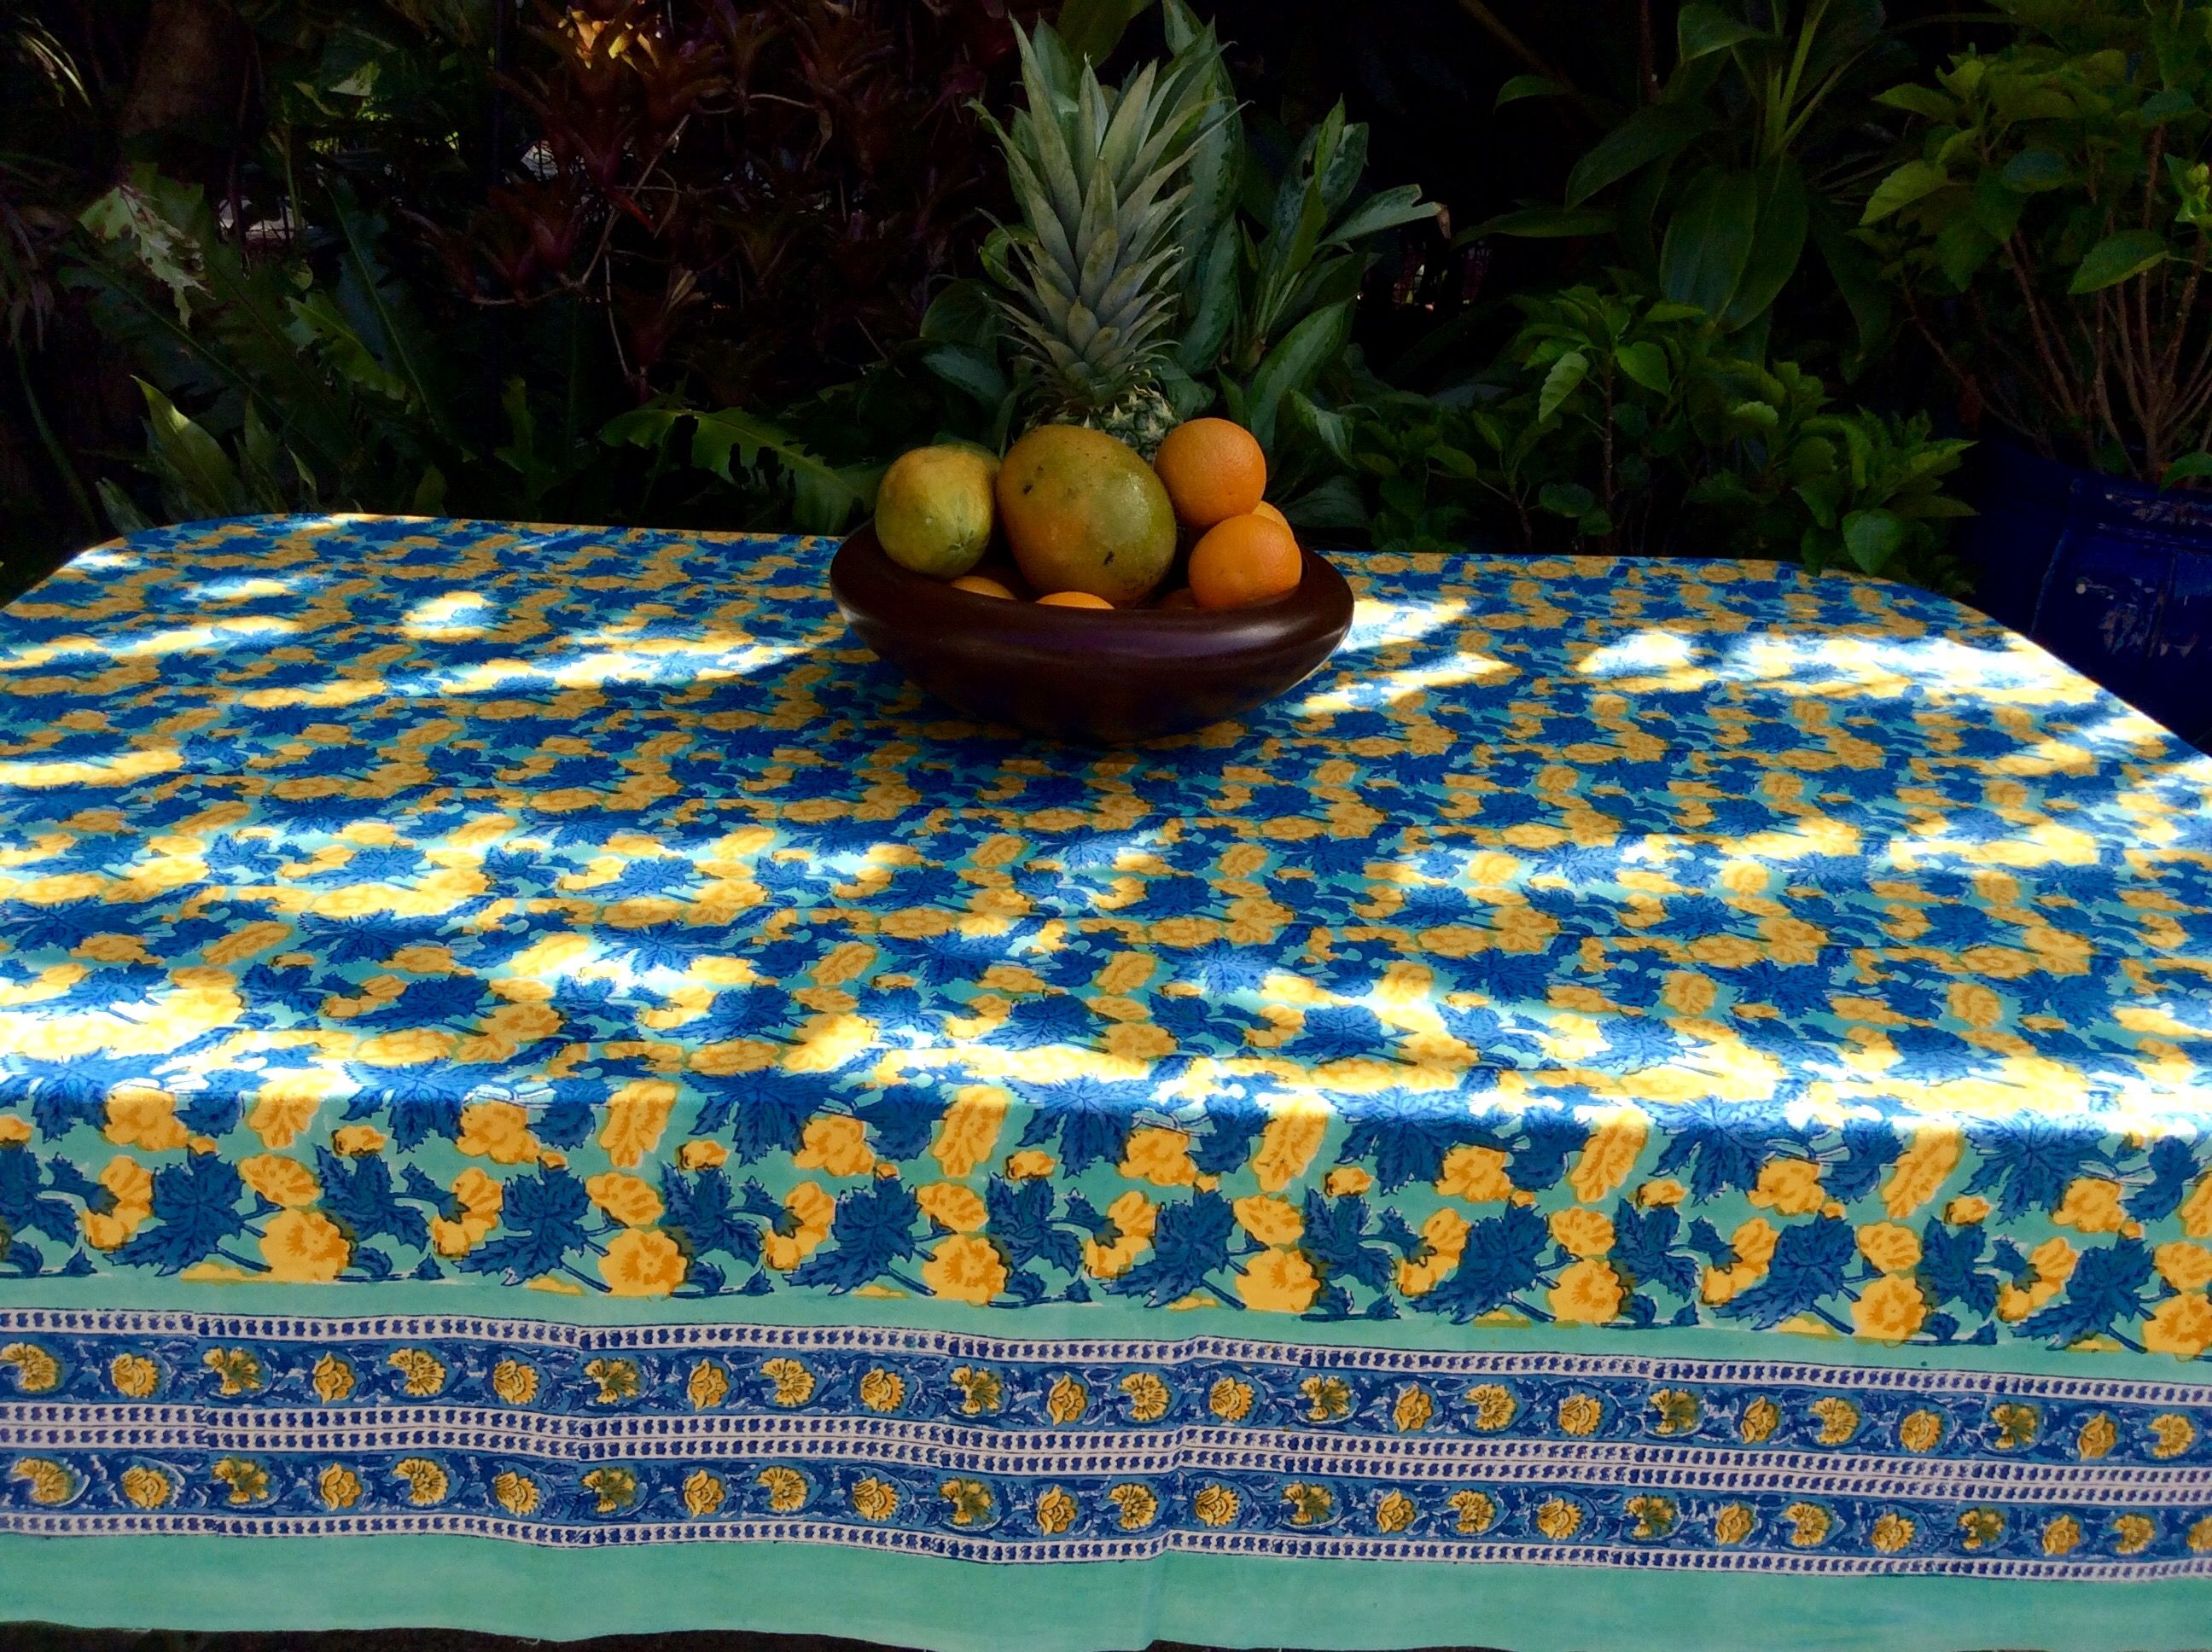 Lovely Block Print Cotton Tablecloth By Sundara Home. Hand Made In India. $75.00.  Www